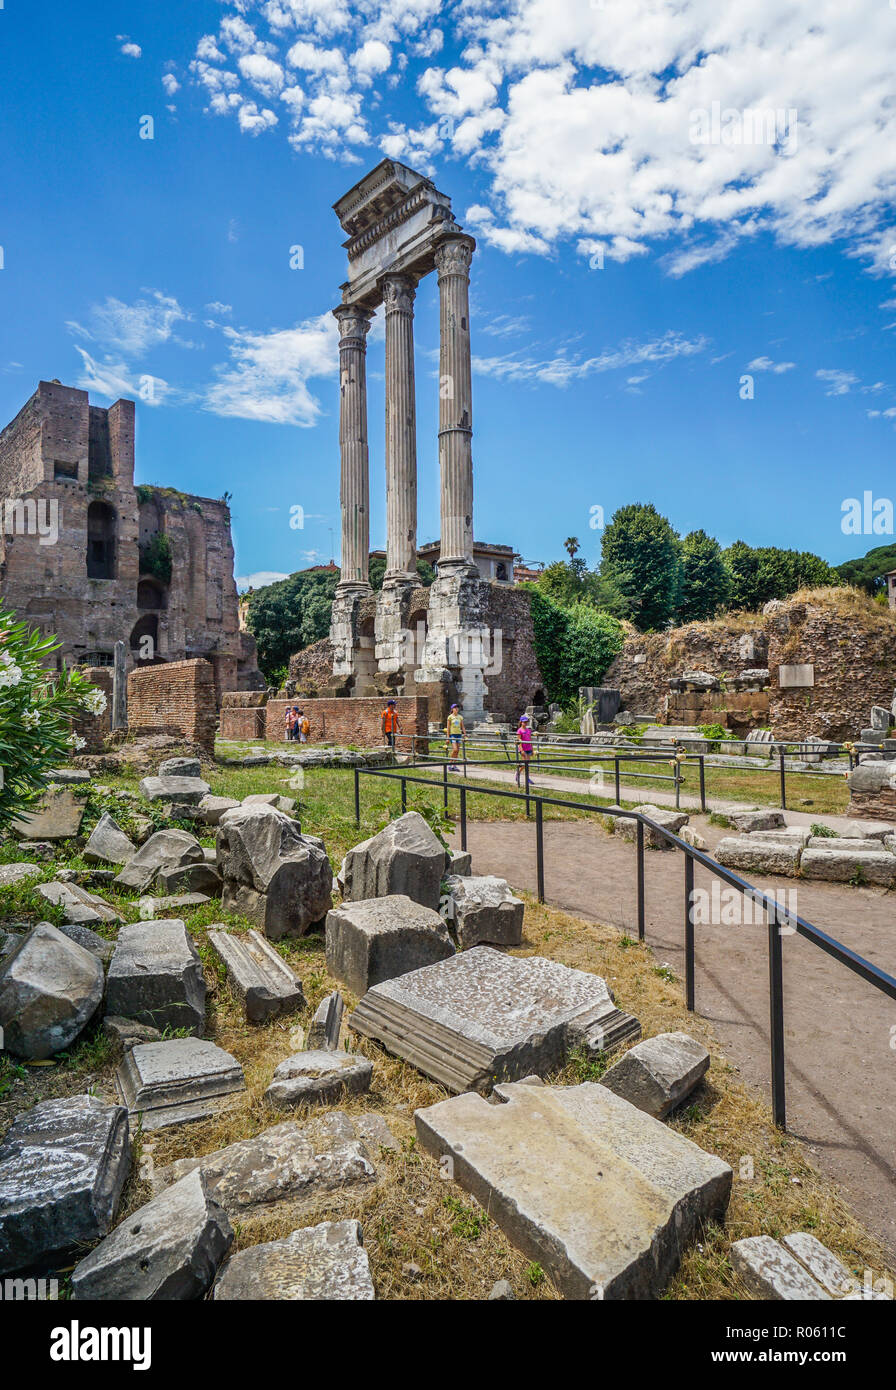 the three remaining Corinthian columns of the ruins of the Temple of Castor and Pollux at the Roman Forum, Rome, Italy - Stock Image